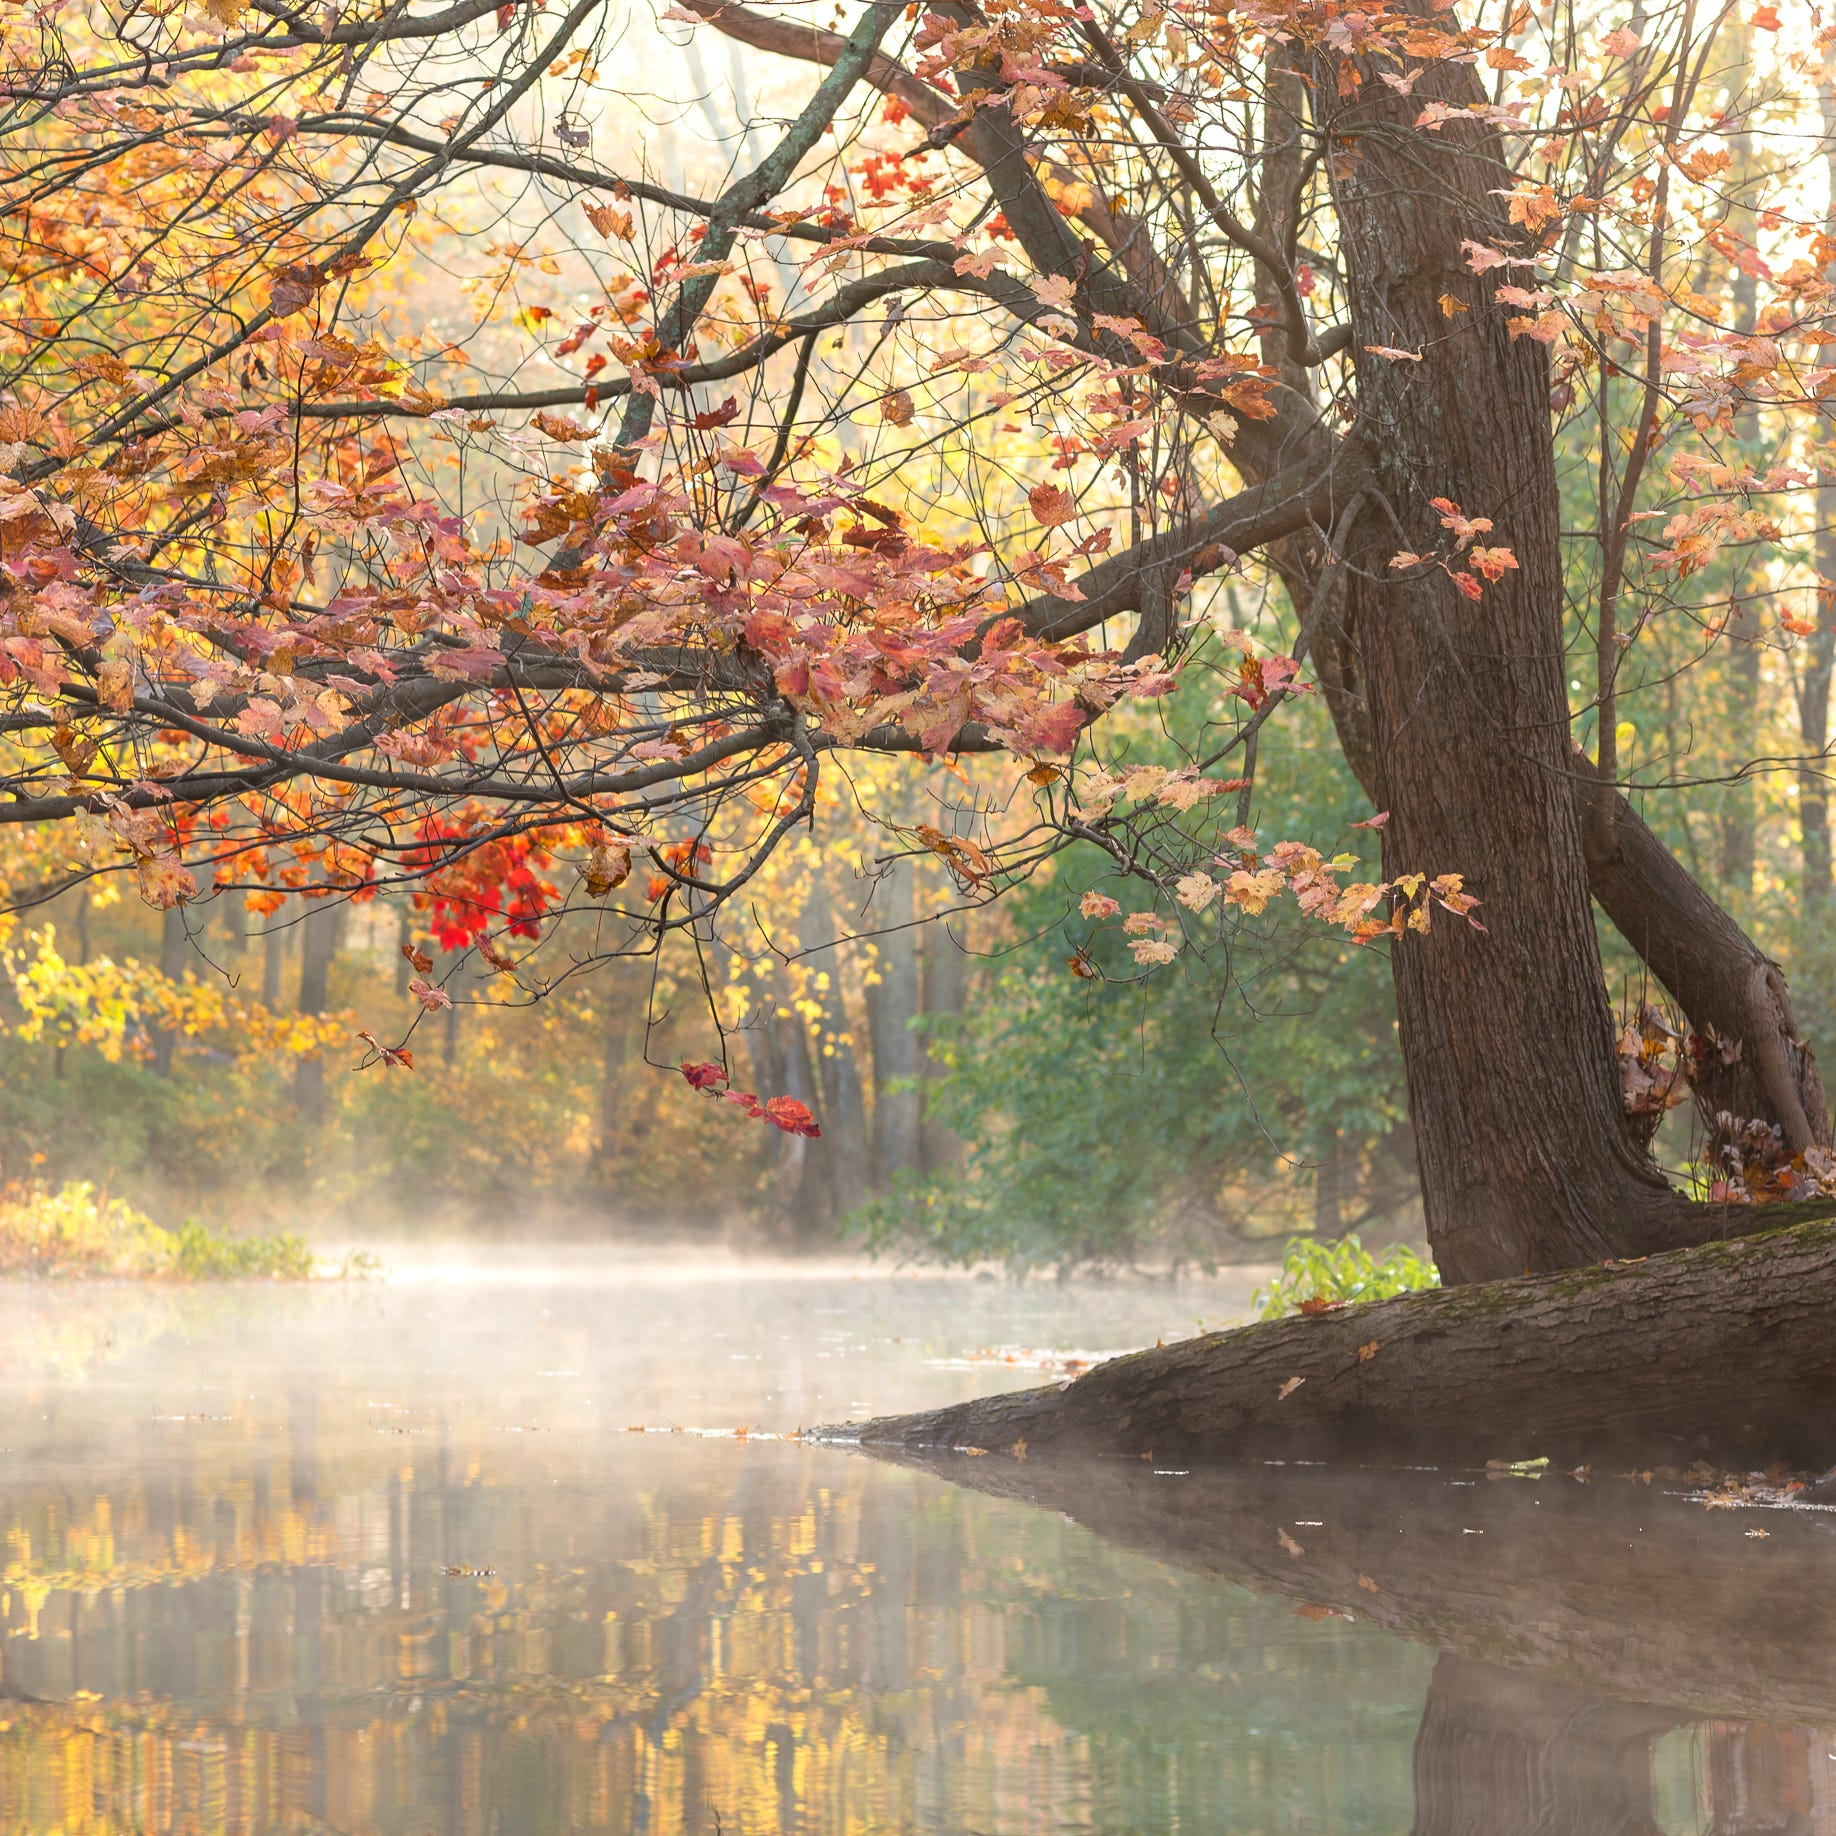 Beauty, mystery unfold inthe Great Swamp through the seasons